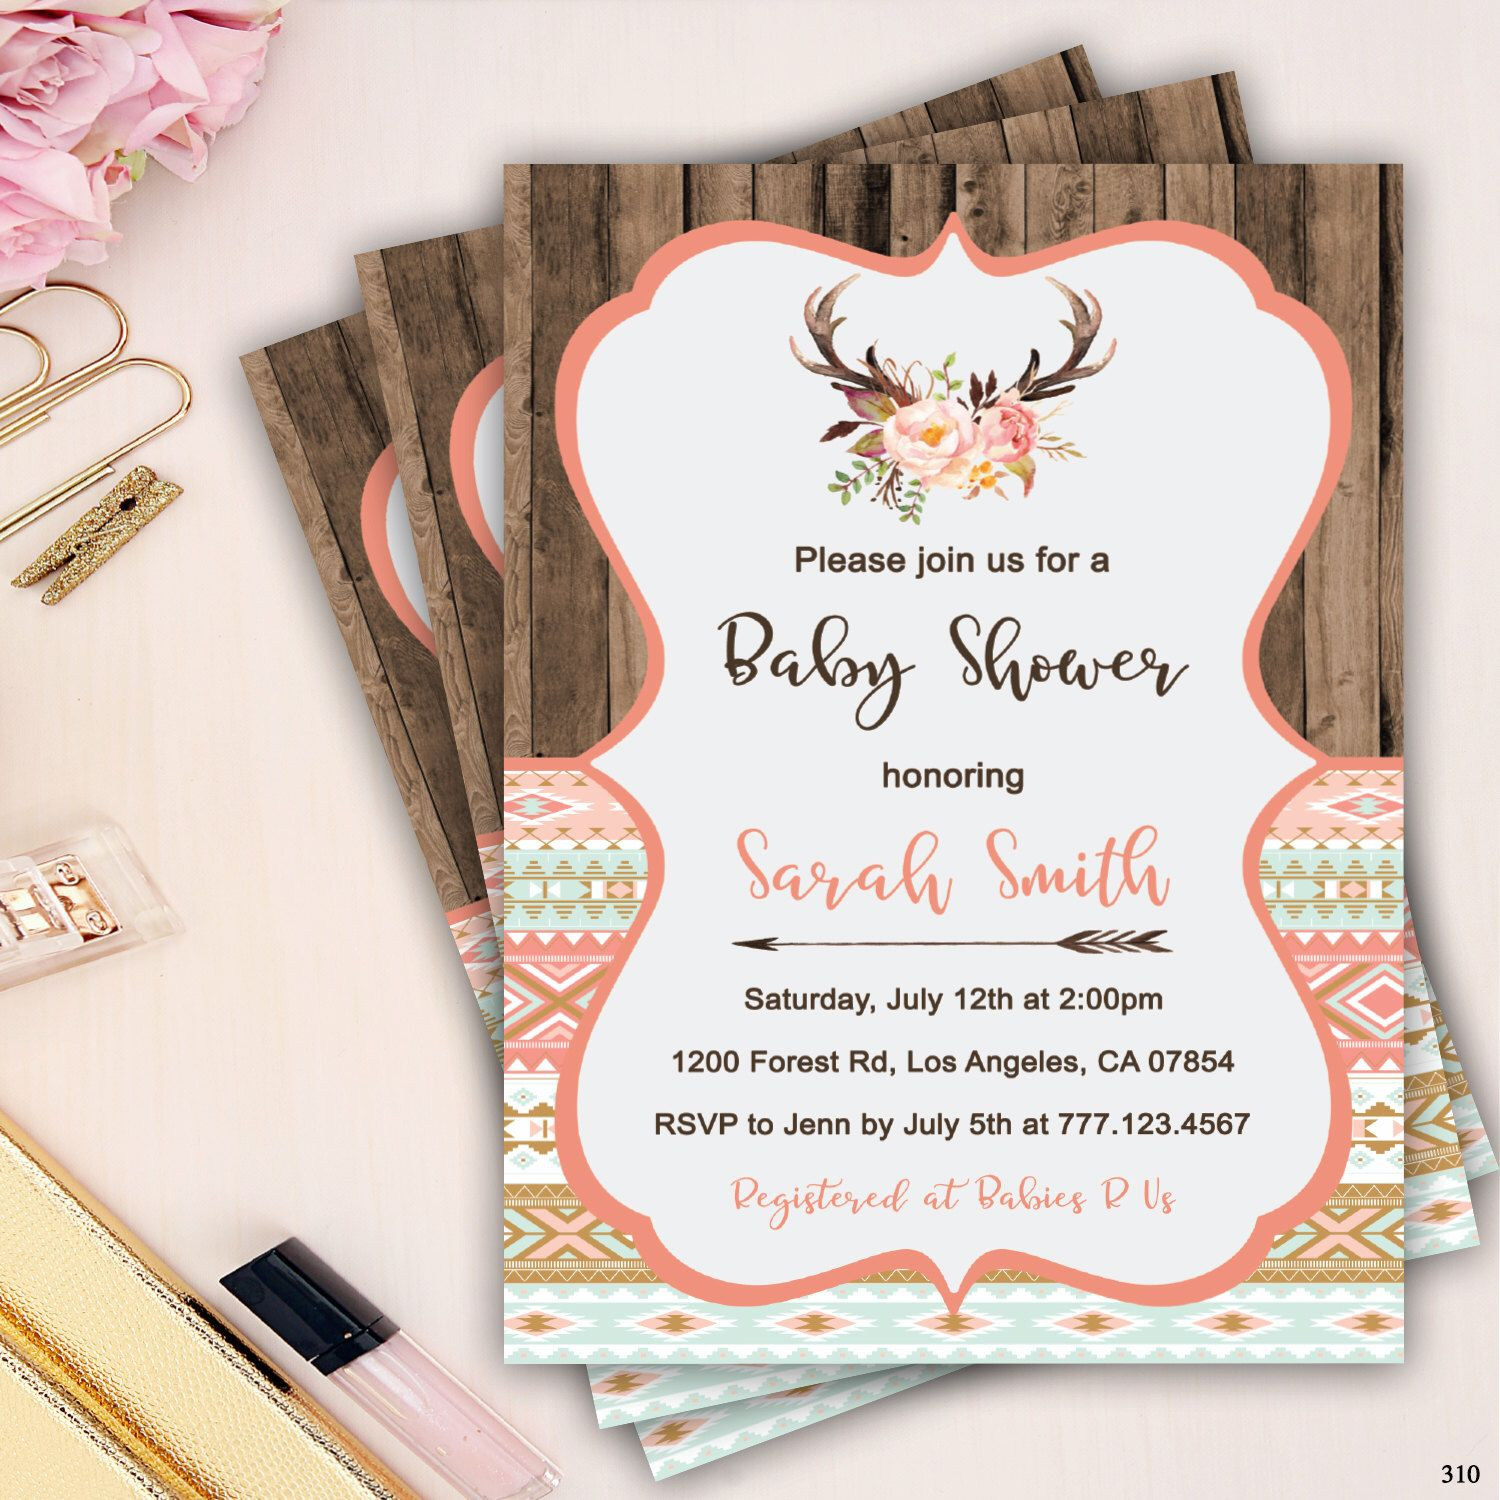 Tribal baby shower invitation rustic boho baby shower invites wood tribal baby shower invitation rustic boho baby shower invites wood invitation coral baby filmwisefo Gallery